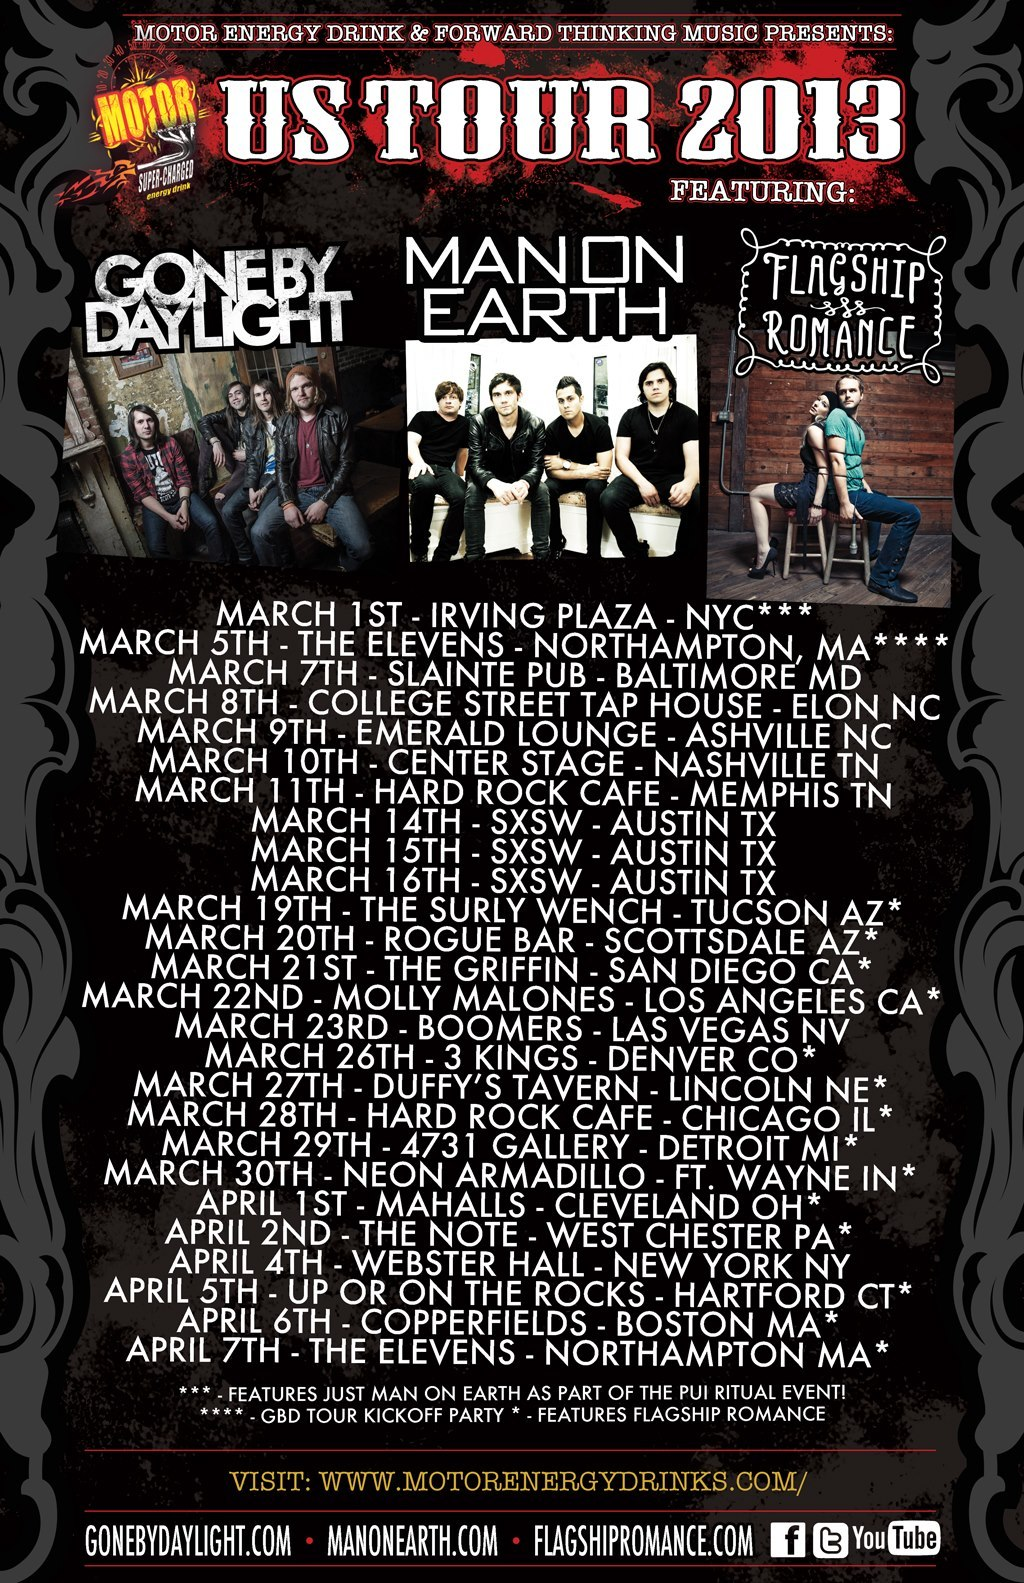 Tonight is our last night playing with Man On Earth and Gone By Daylight *holding back tears*… We have had the most memorable, crazy, inspiring, adventurous time with these guys, who we now feel like are our brothers.   We play at The Elevens in Northampton, MA, at 7:30 sharp! Come out if you're in the area.. It's going to be quite a night. :) -JJ & SF